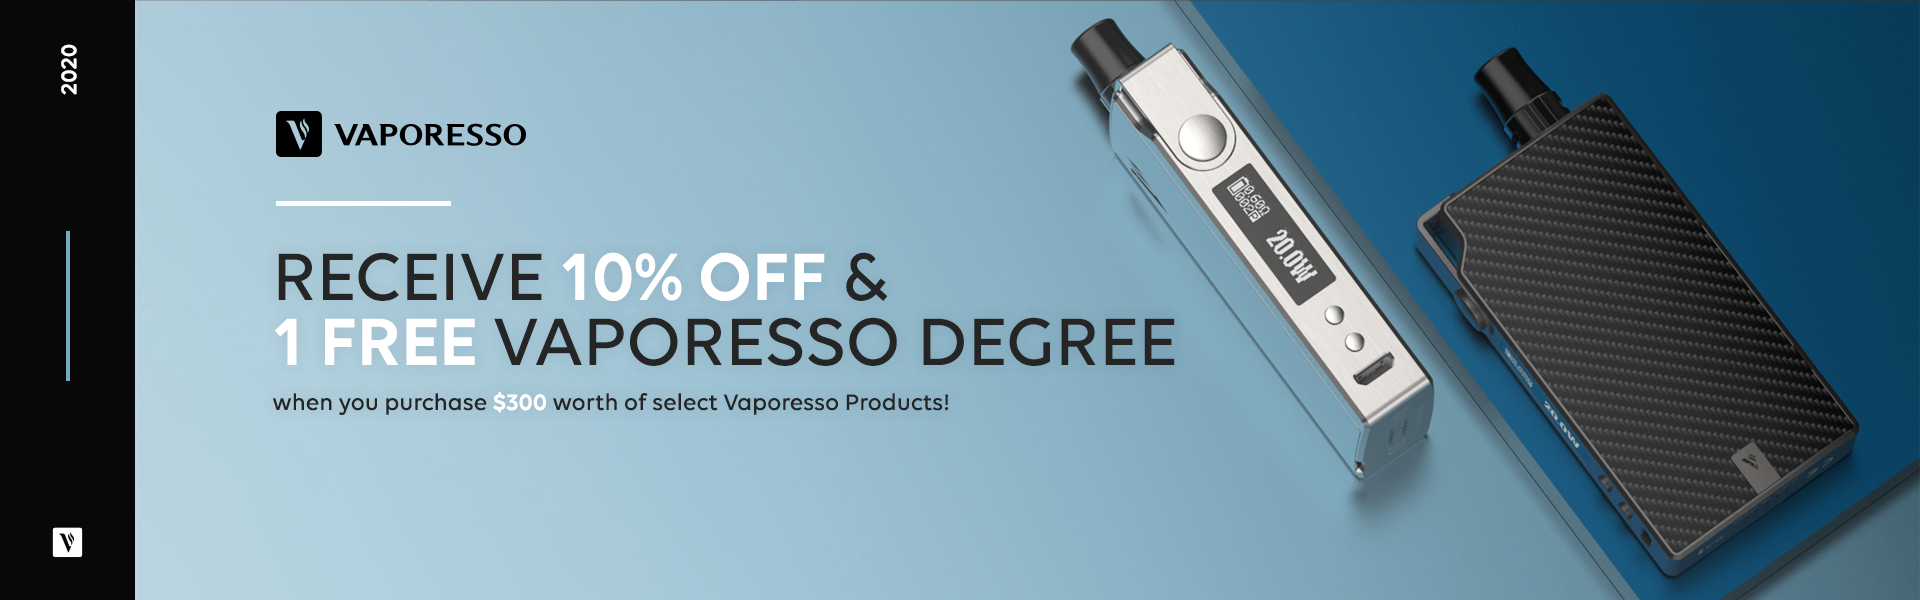 Purchase 300 Dollars Worth of Vaporesso Products and Receive 10 Percent Off and 1 Free Vaporesso Degree